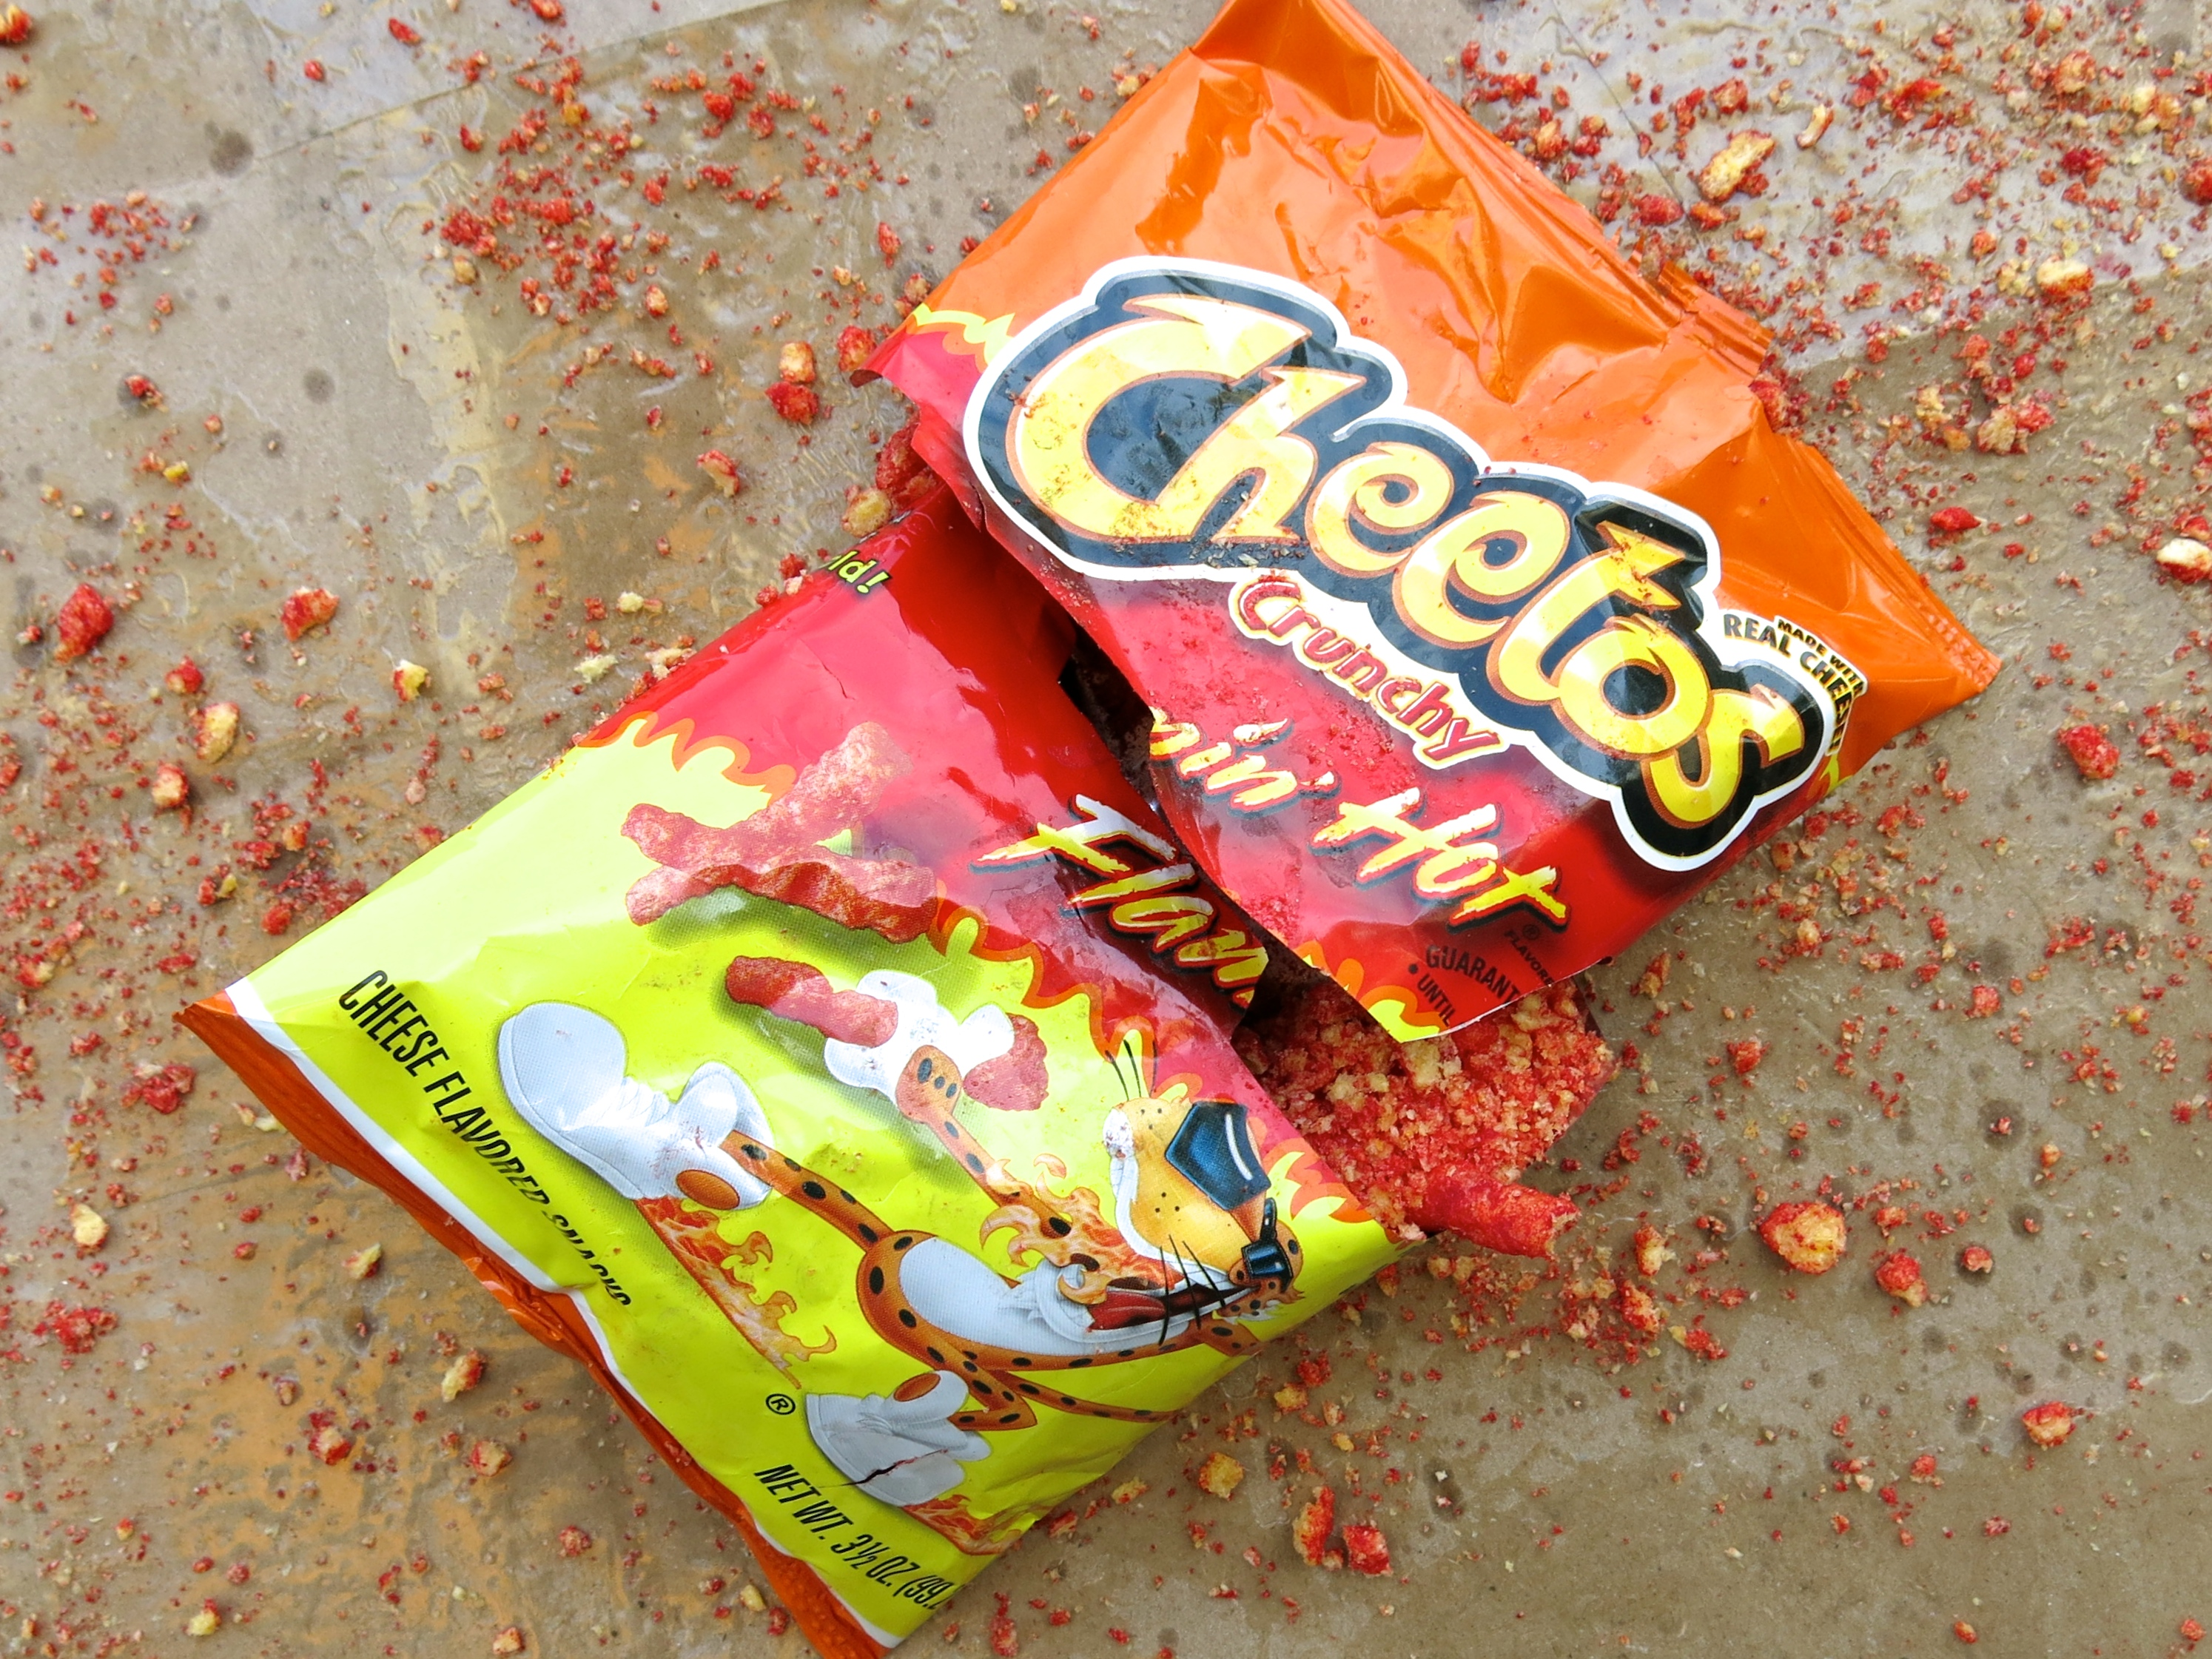 A bag of Flamin' Hot Cheetos on a brown background